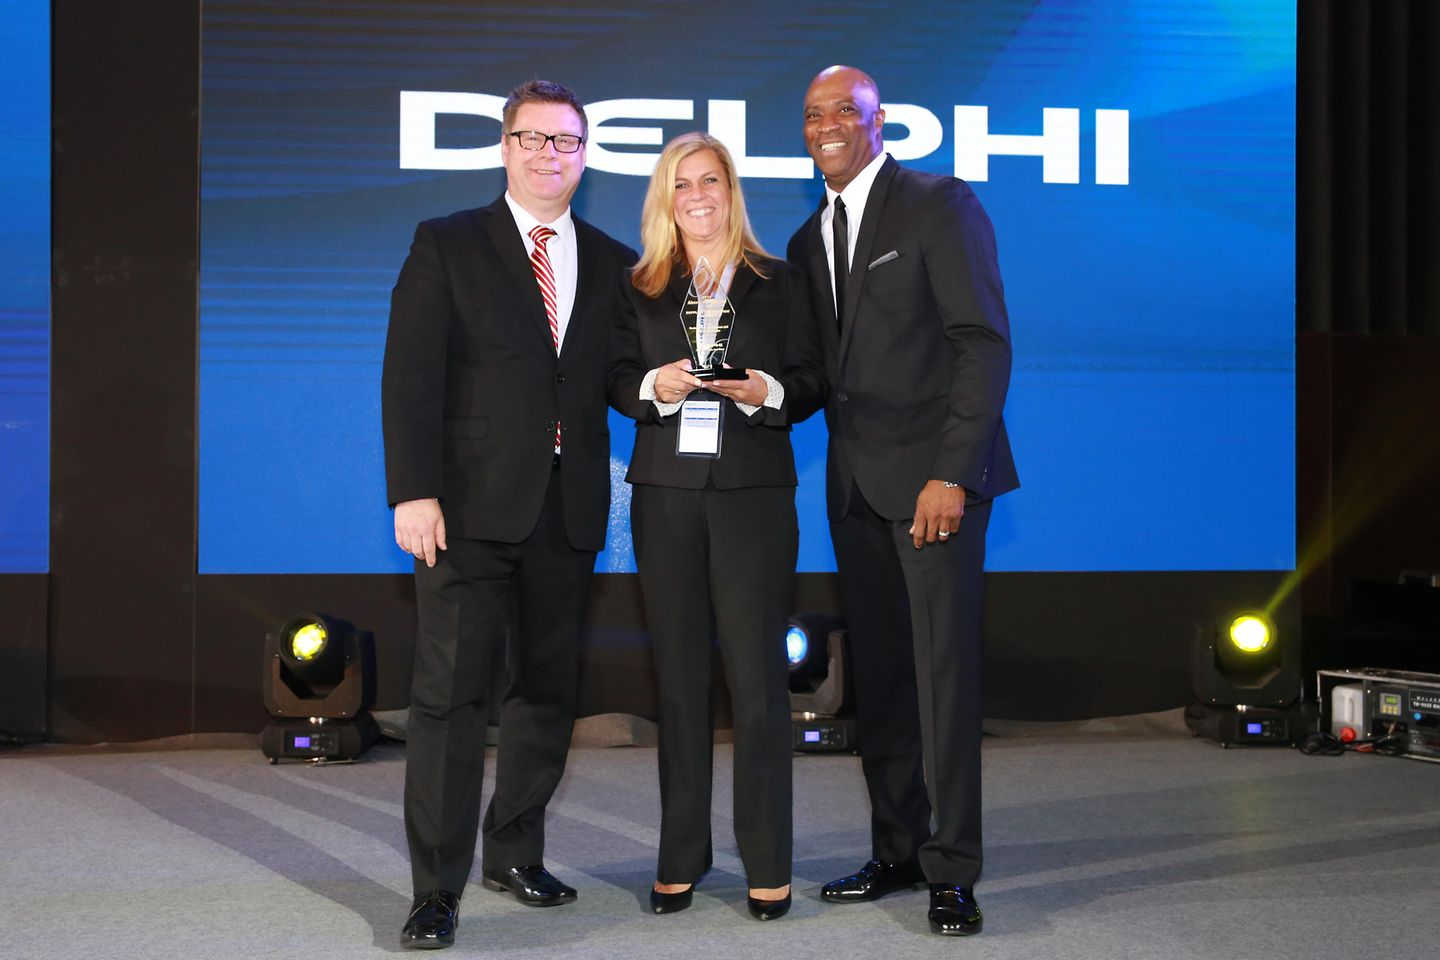 Henkel has received two 2014 Pinnacle Awards and one Above and Beyond Award from Delphi Automotive PLC